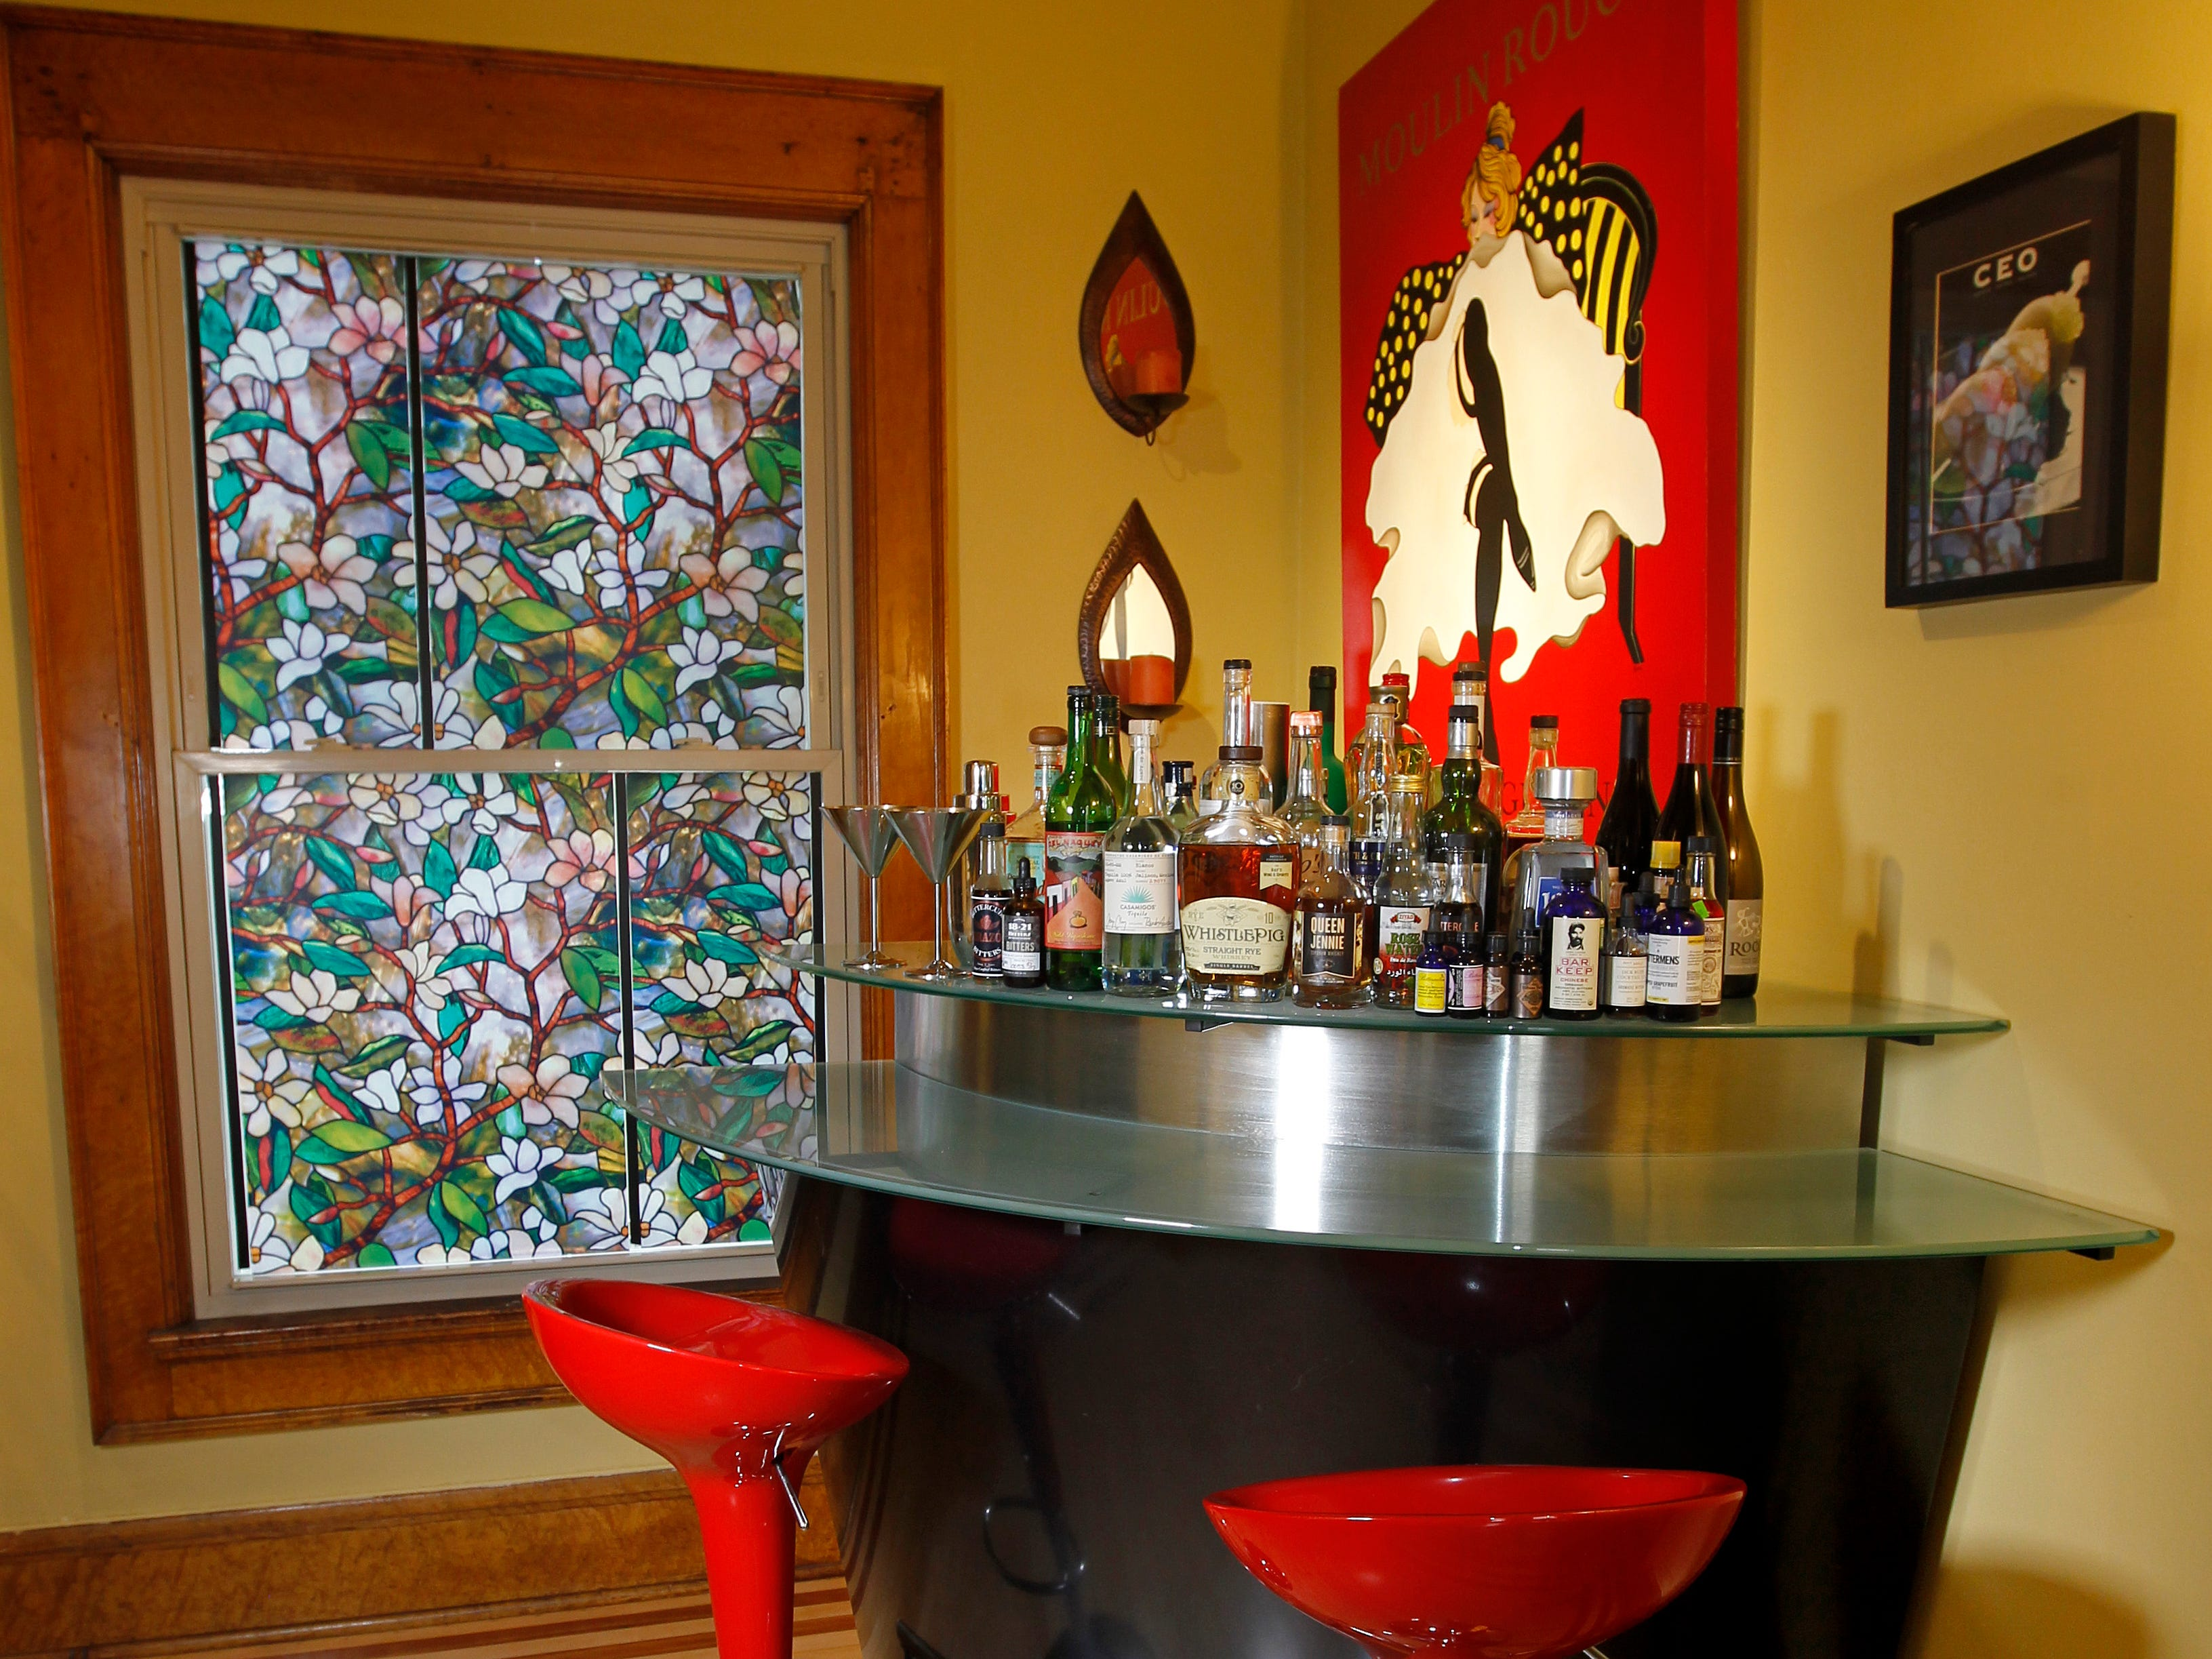 Bright red bar stools coordinate with a Moulin Rouge canvas painting in the bar area.  A faux stained glass offers a colorful accent near the modern bar made of chrome and frosted glass.